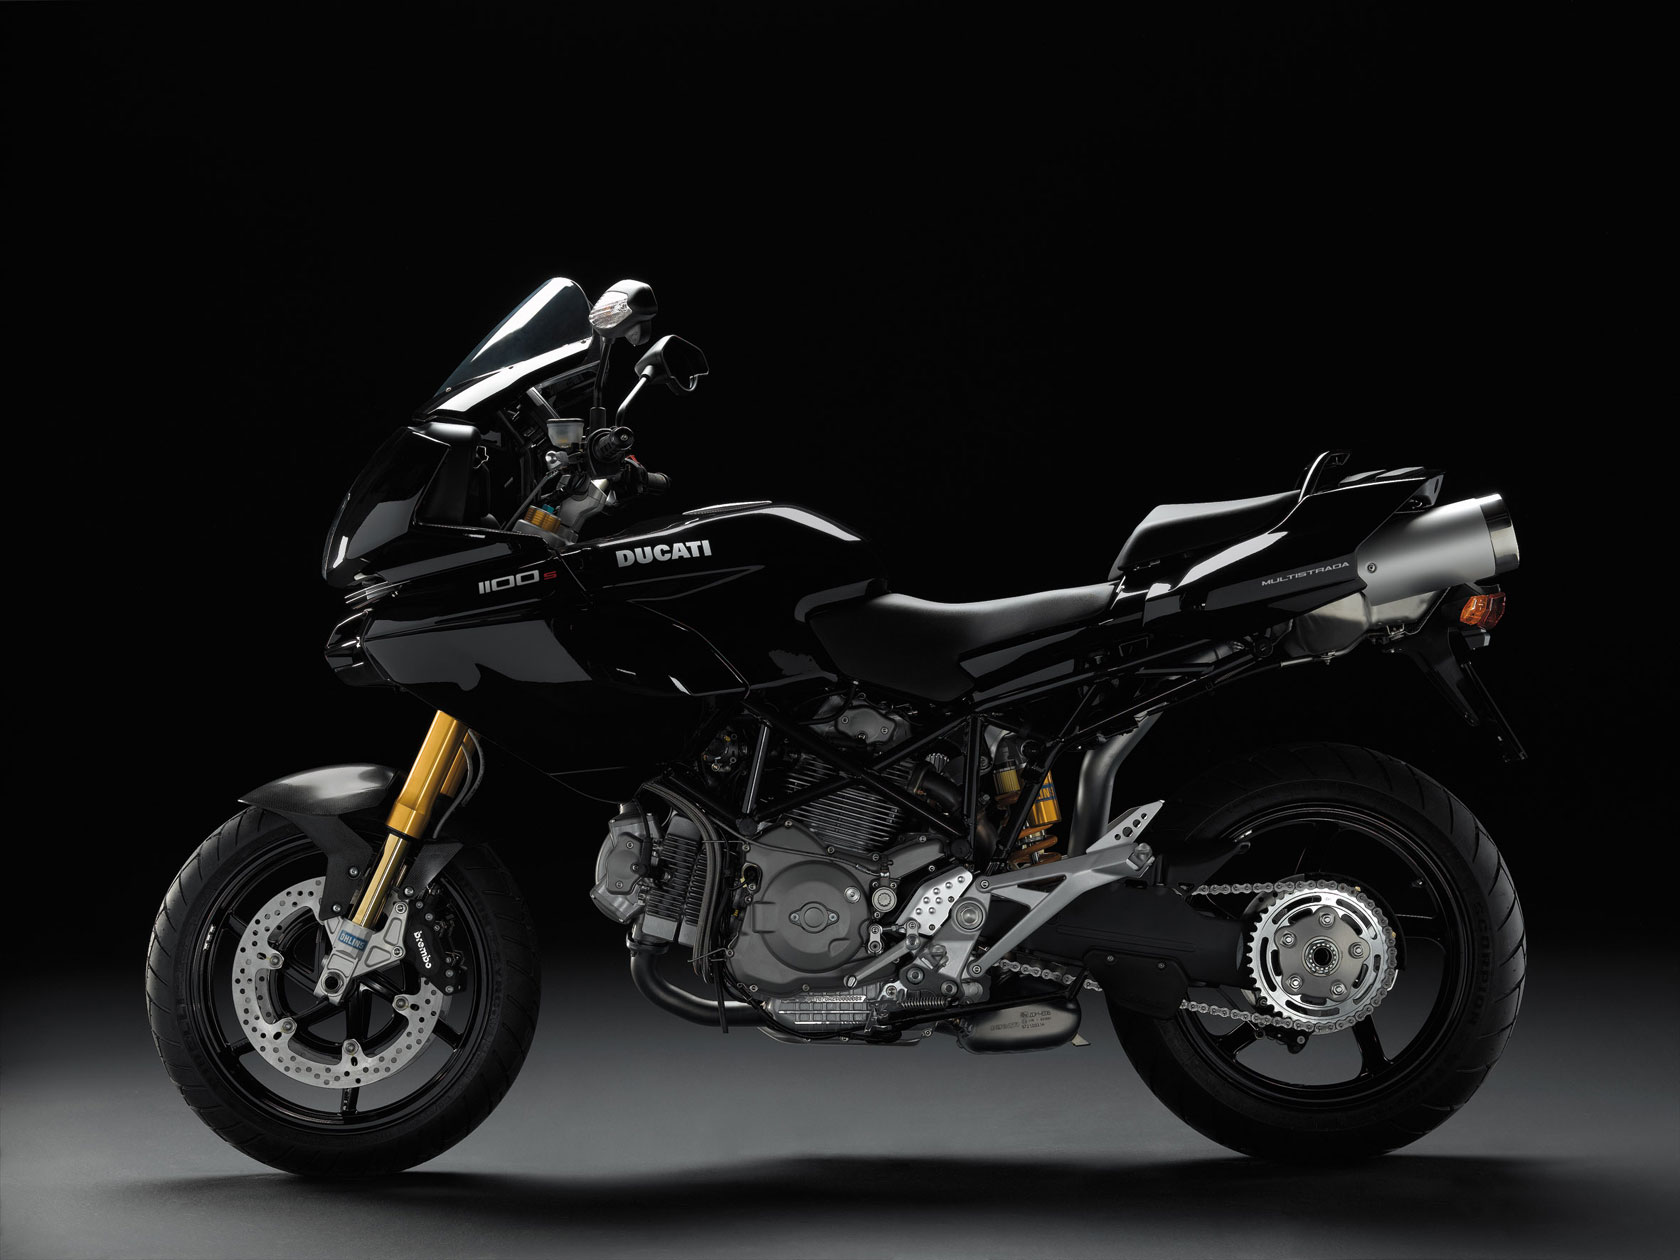 Ducati Multistrada 1100 S 2008 wallpapers #12774